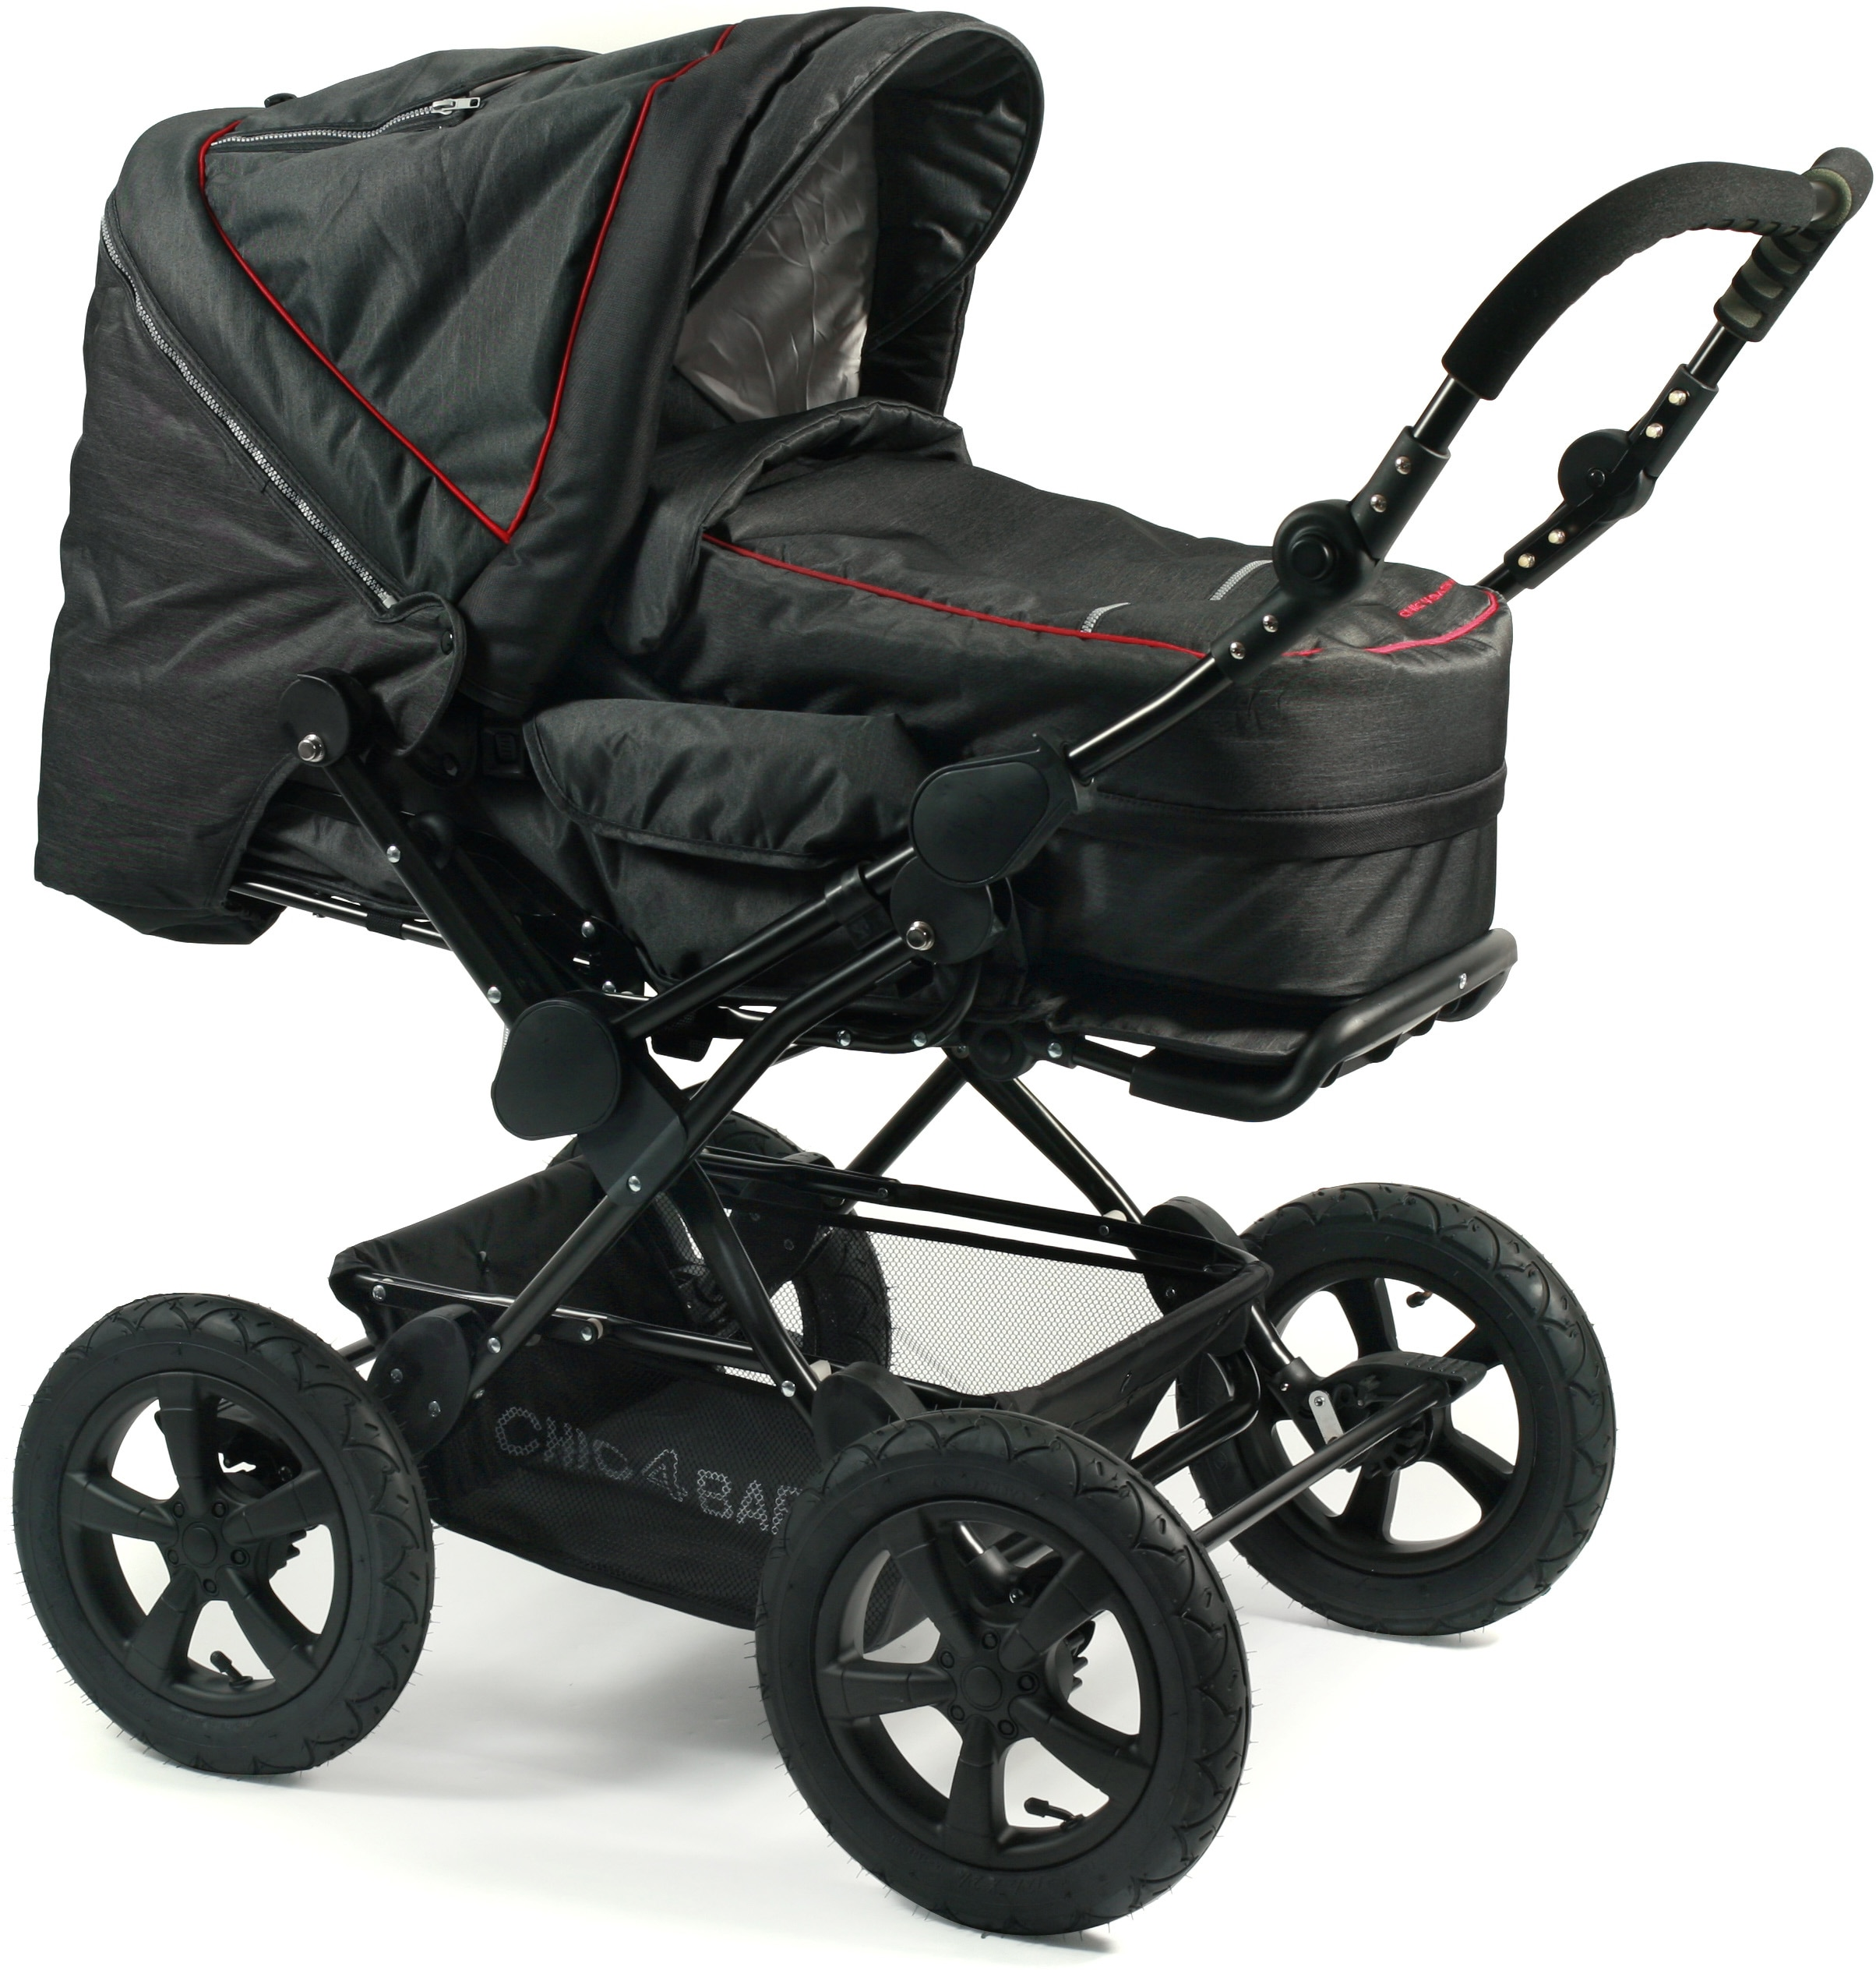 rabatt chic 4 baby kombi kinderwagen viva jeans black schwarz. Black Bedroom Furniture Sets. Home Design Ideas